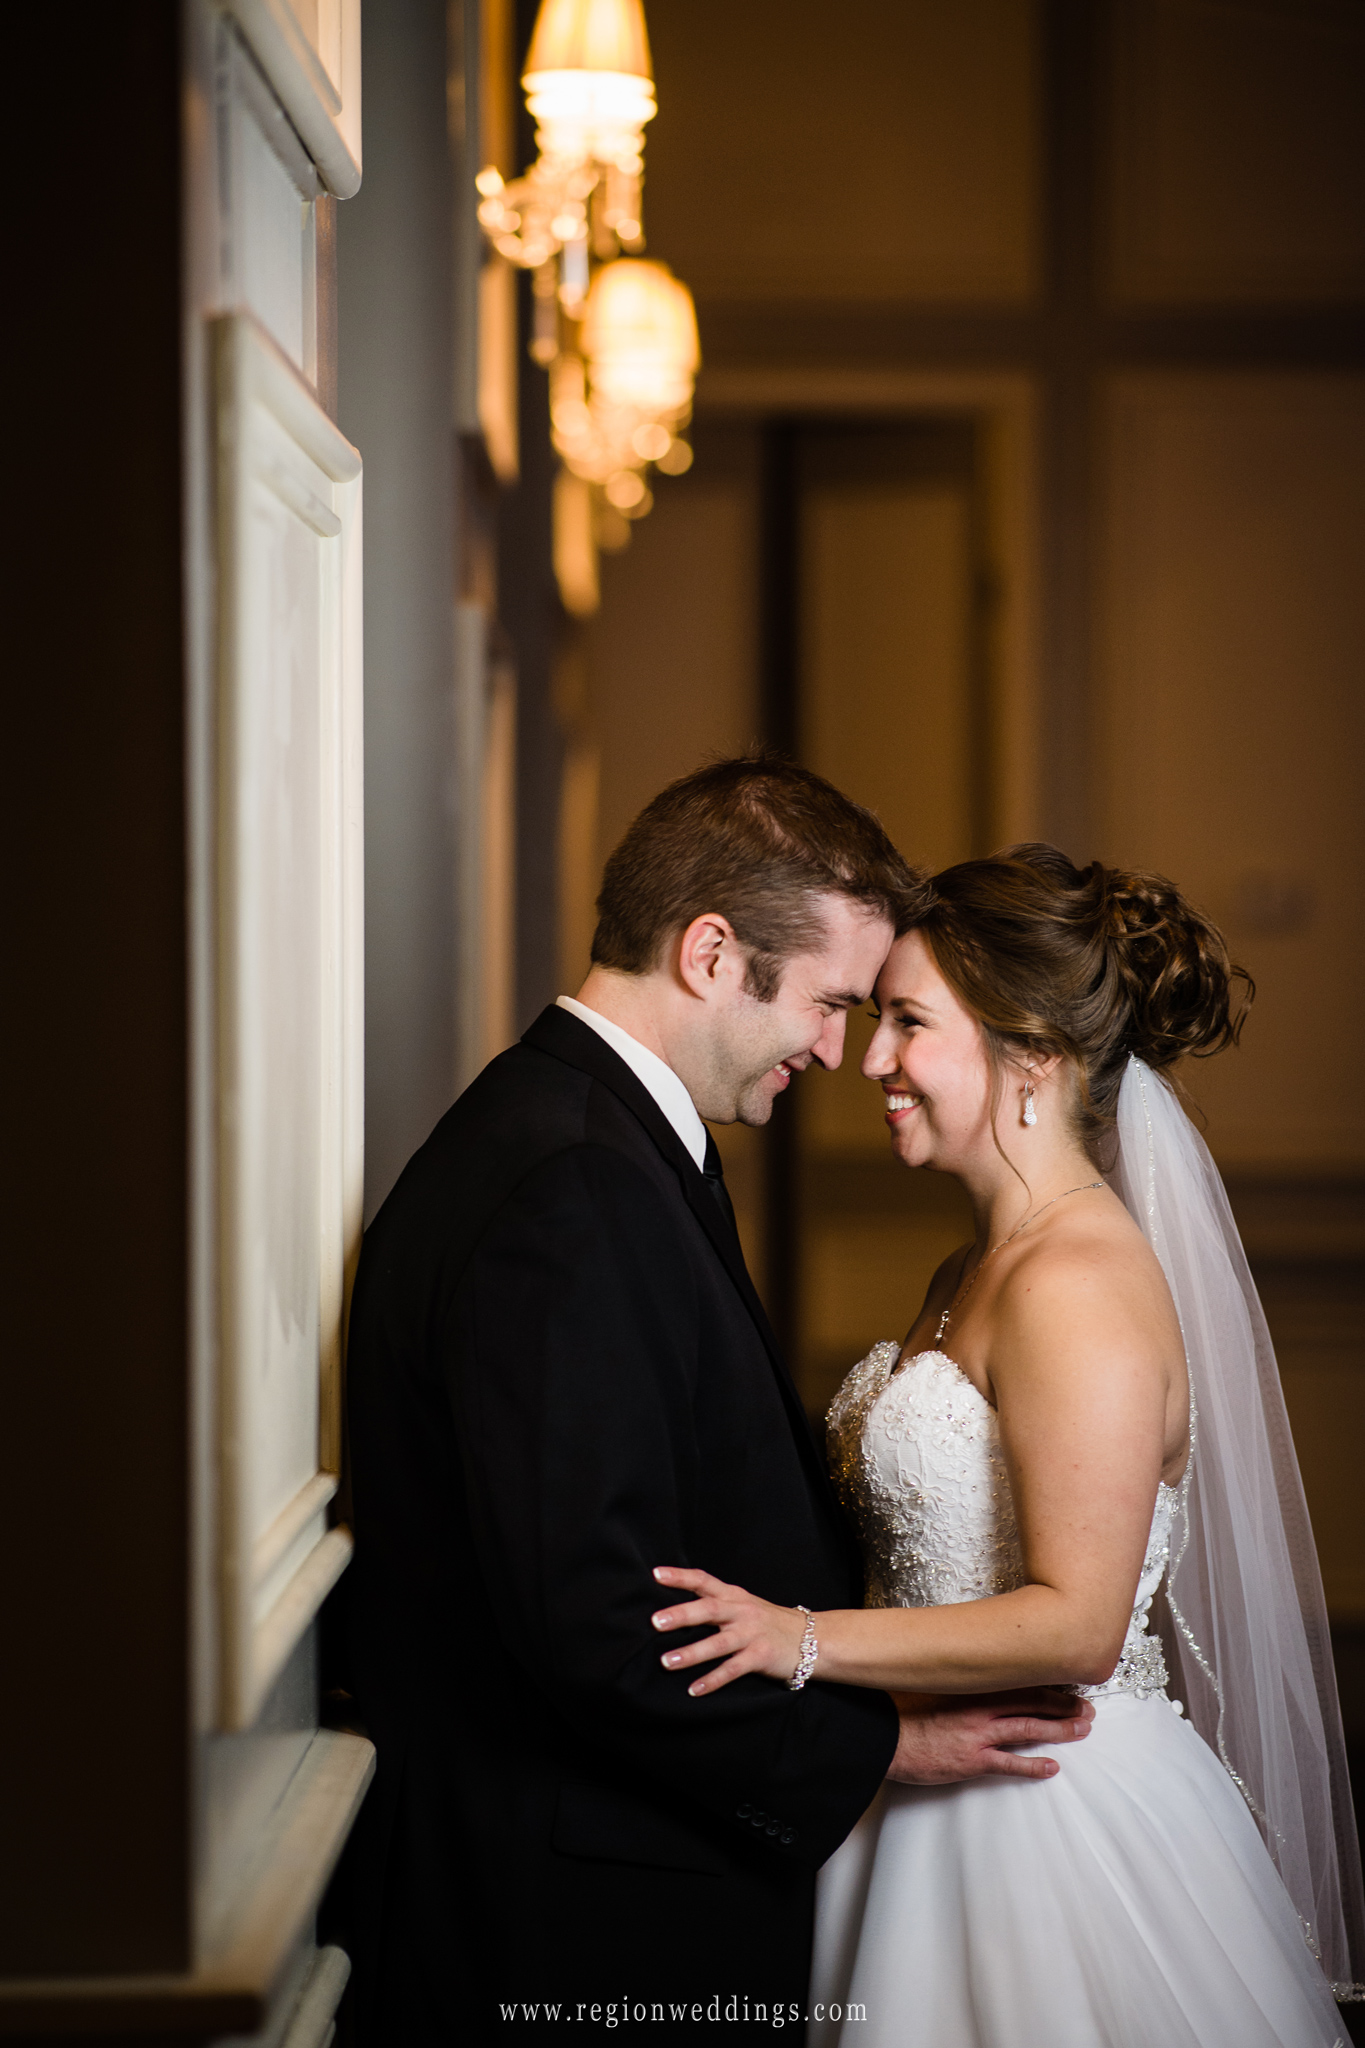 Bride and groom embrace inside the ballroom of Uptown Center for Performing Arts.